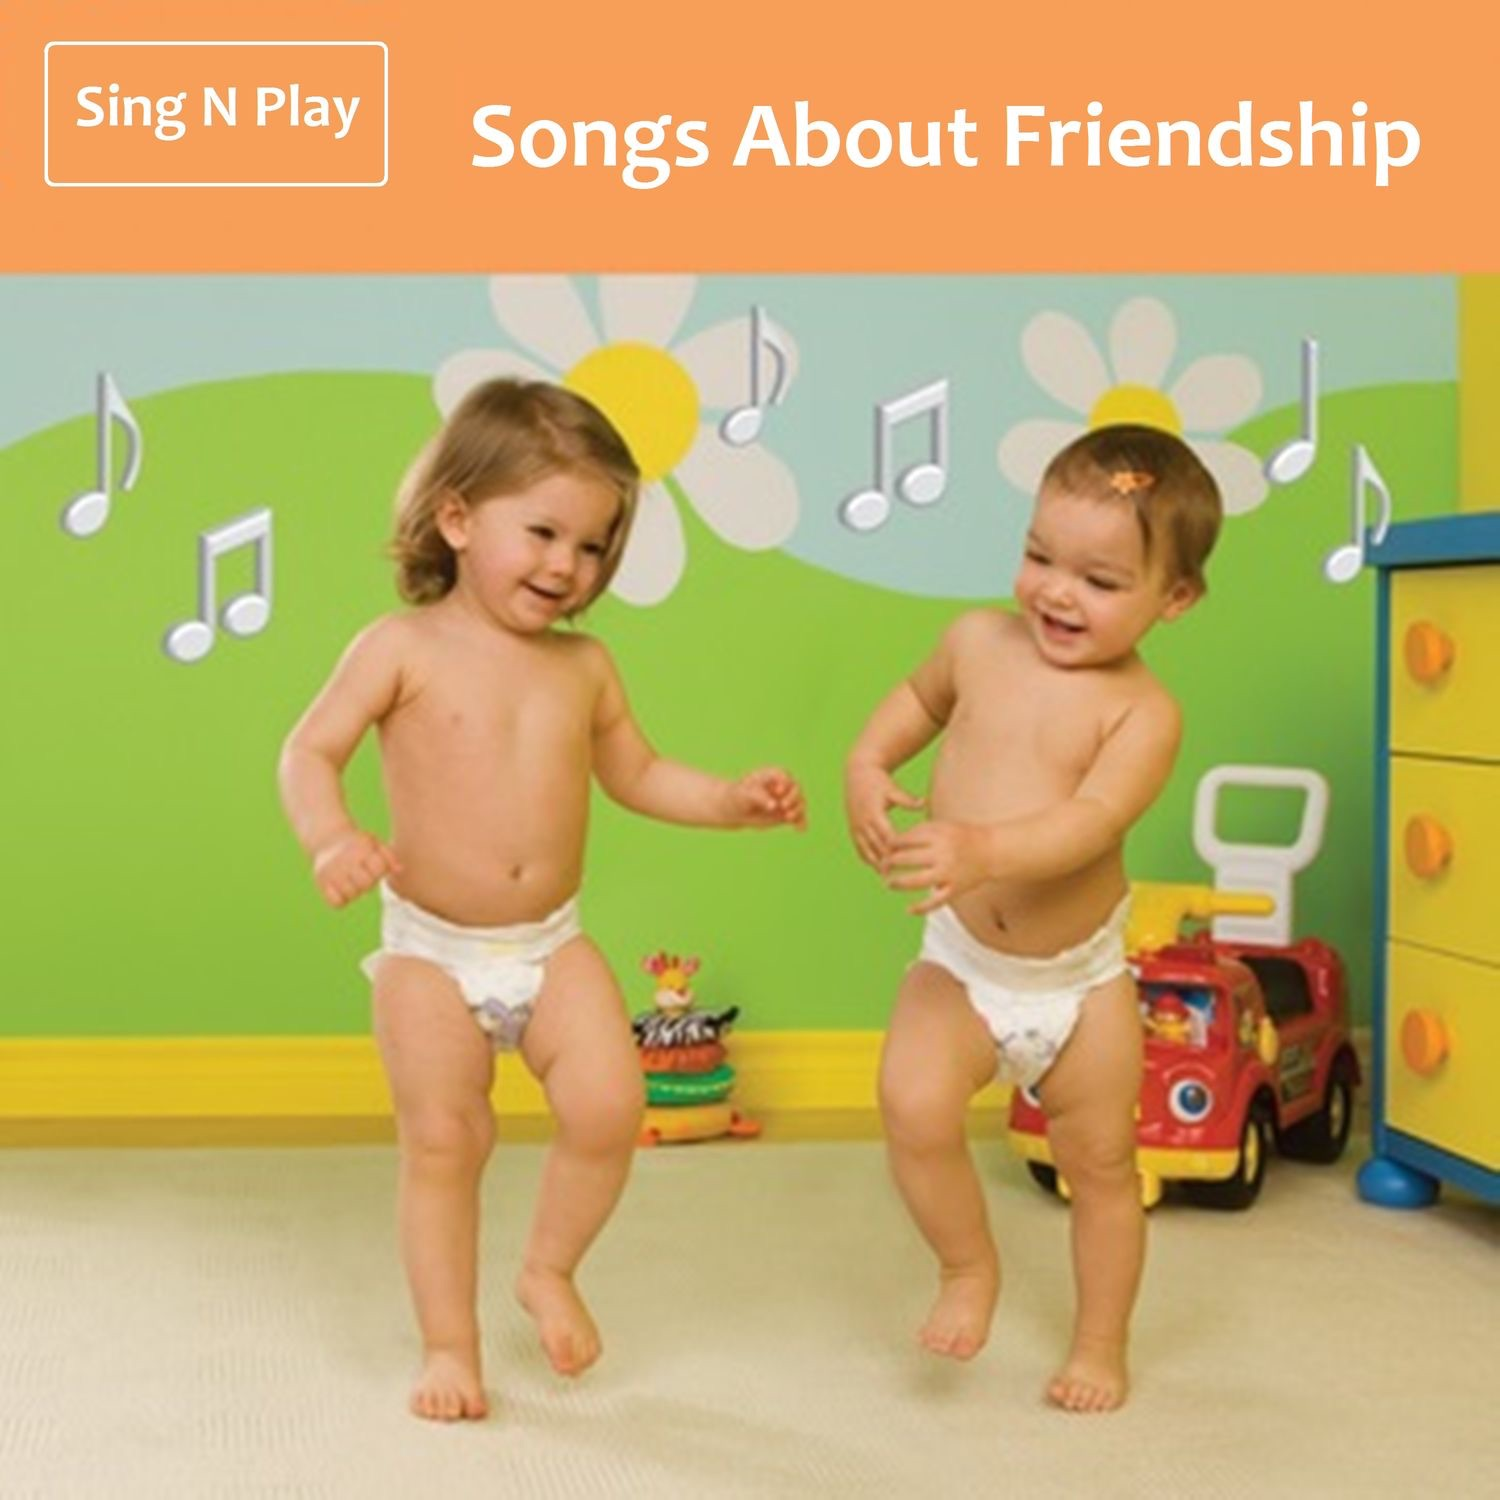 Songs About Friendship